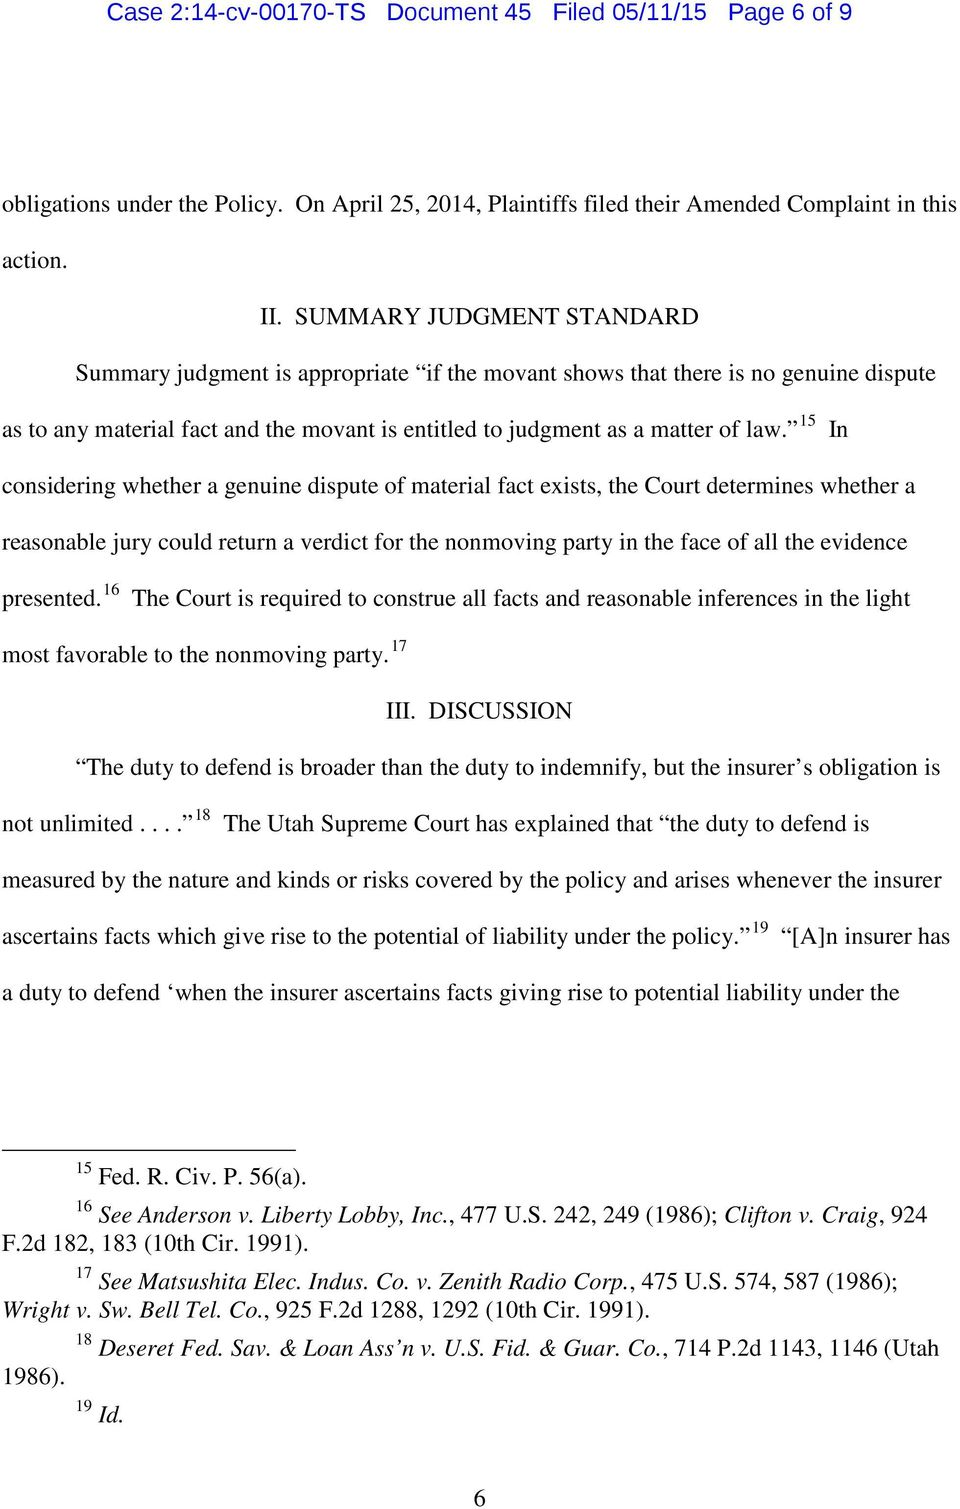 15 In considering whether a genuine dispute of material fact exists, the Court determines whether a reasonable jury could return a verdict for the nonmoving party in the face of all the evidence